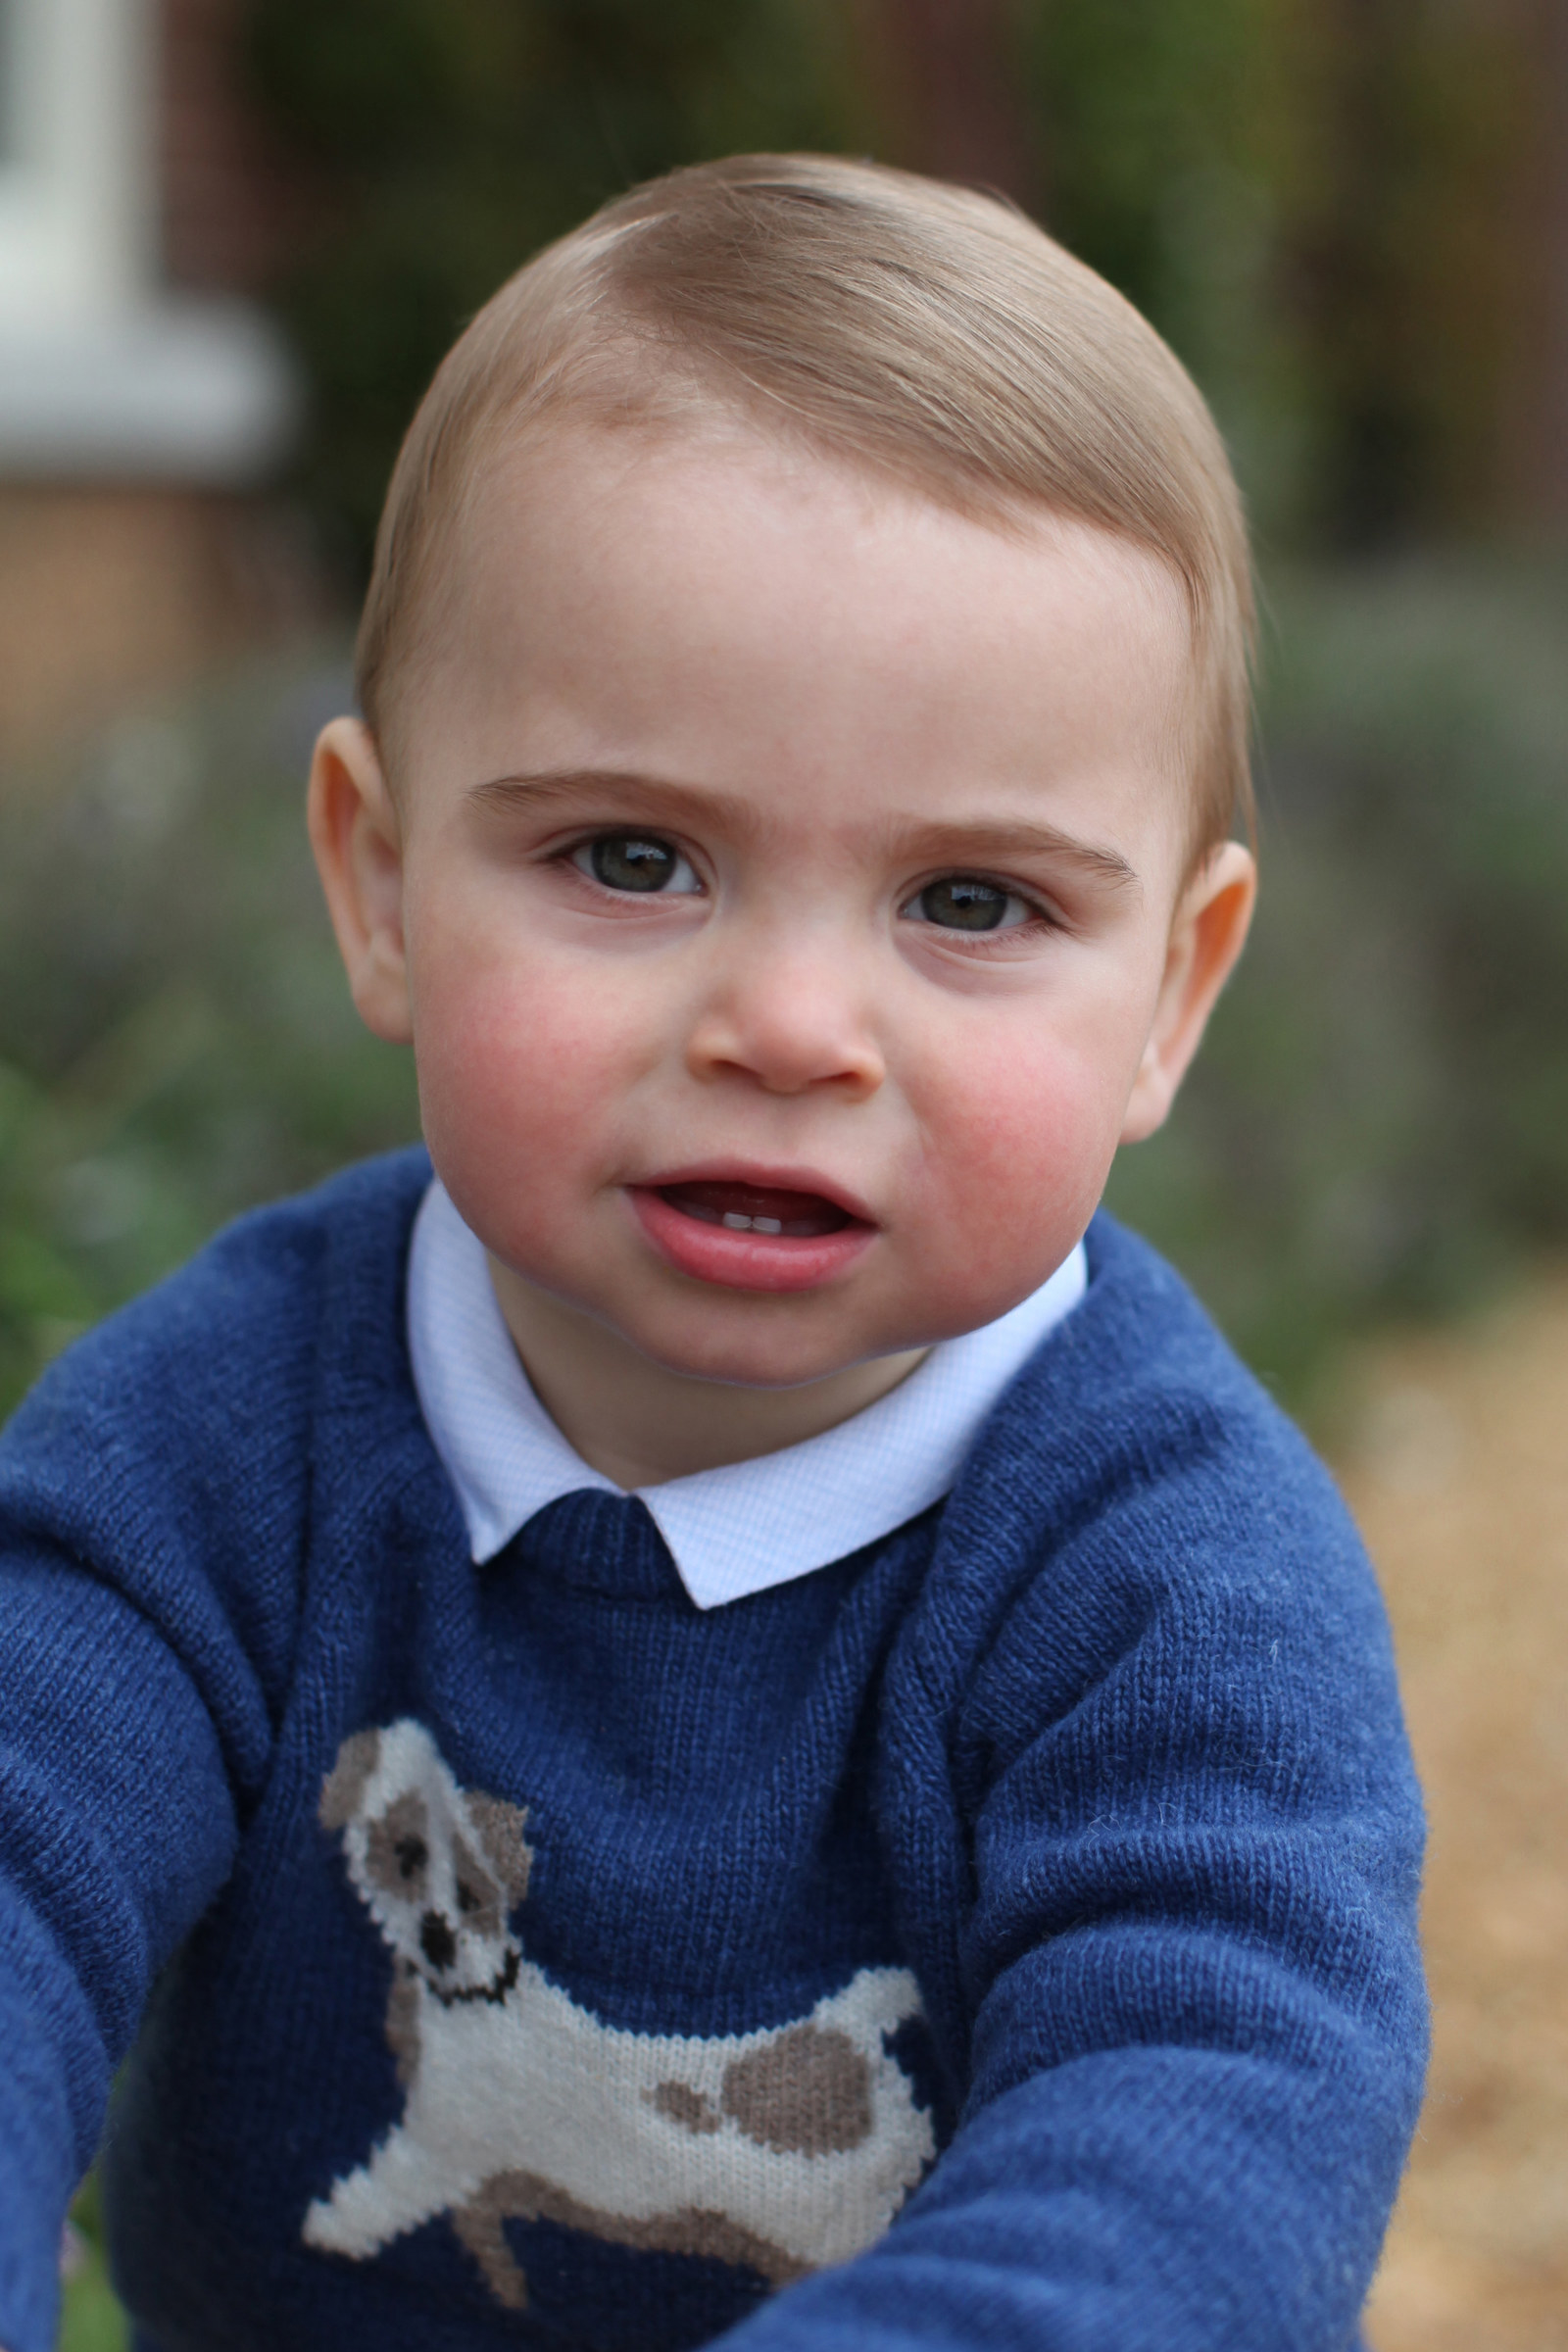 New Photos Of Prince Louis Released To Celebrate 1st Birthday